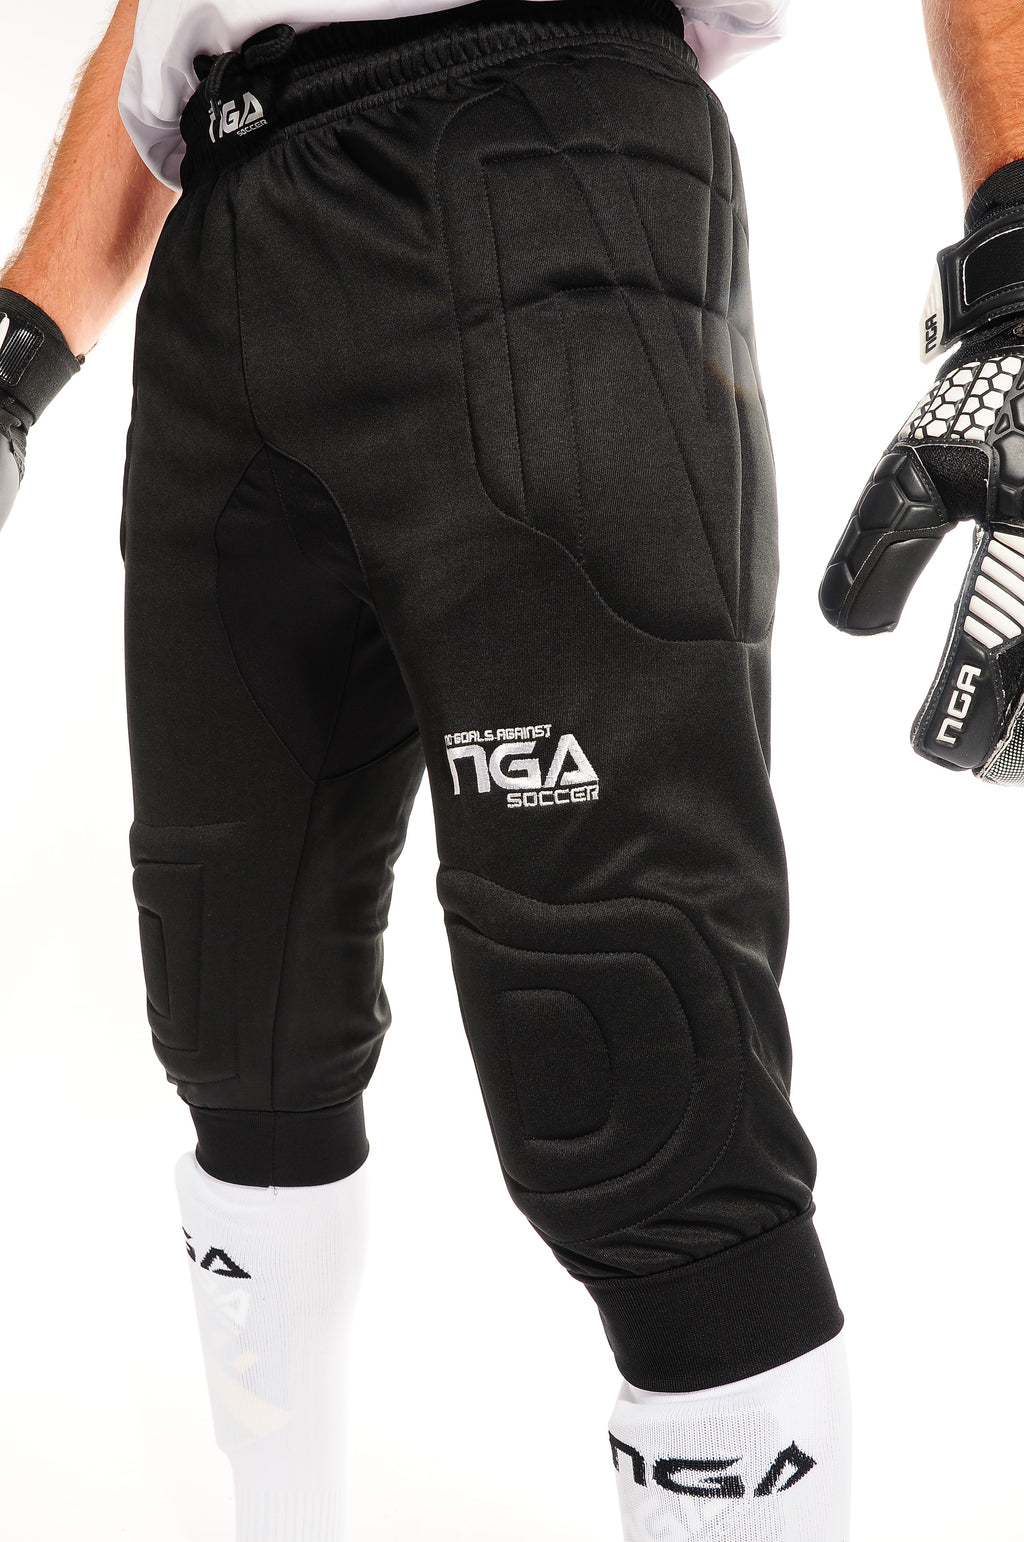 NGA Goalkeeper Pants 3/4